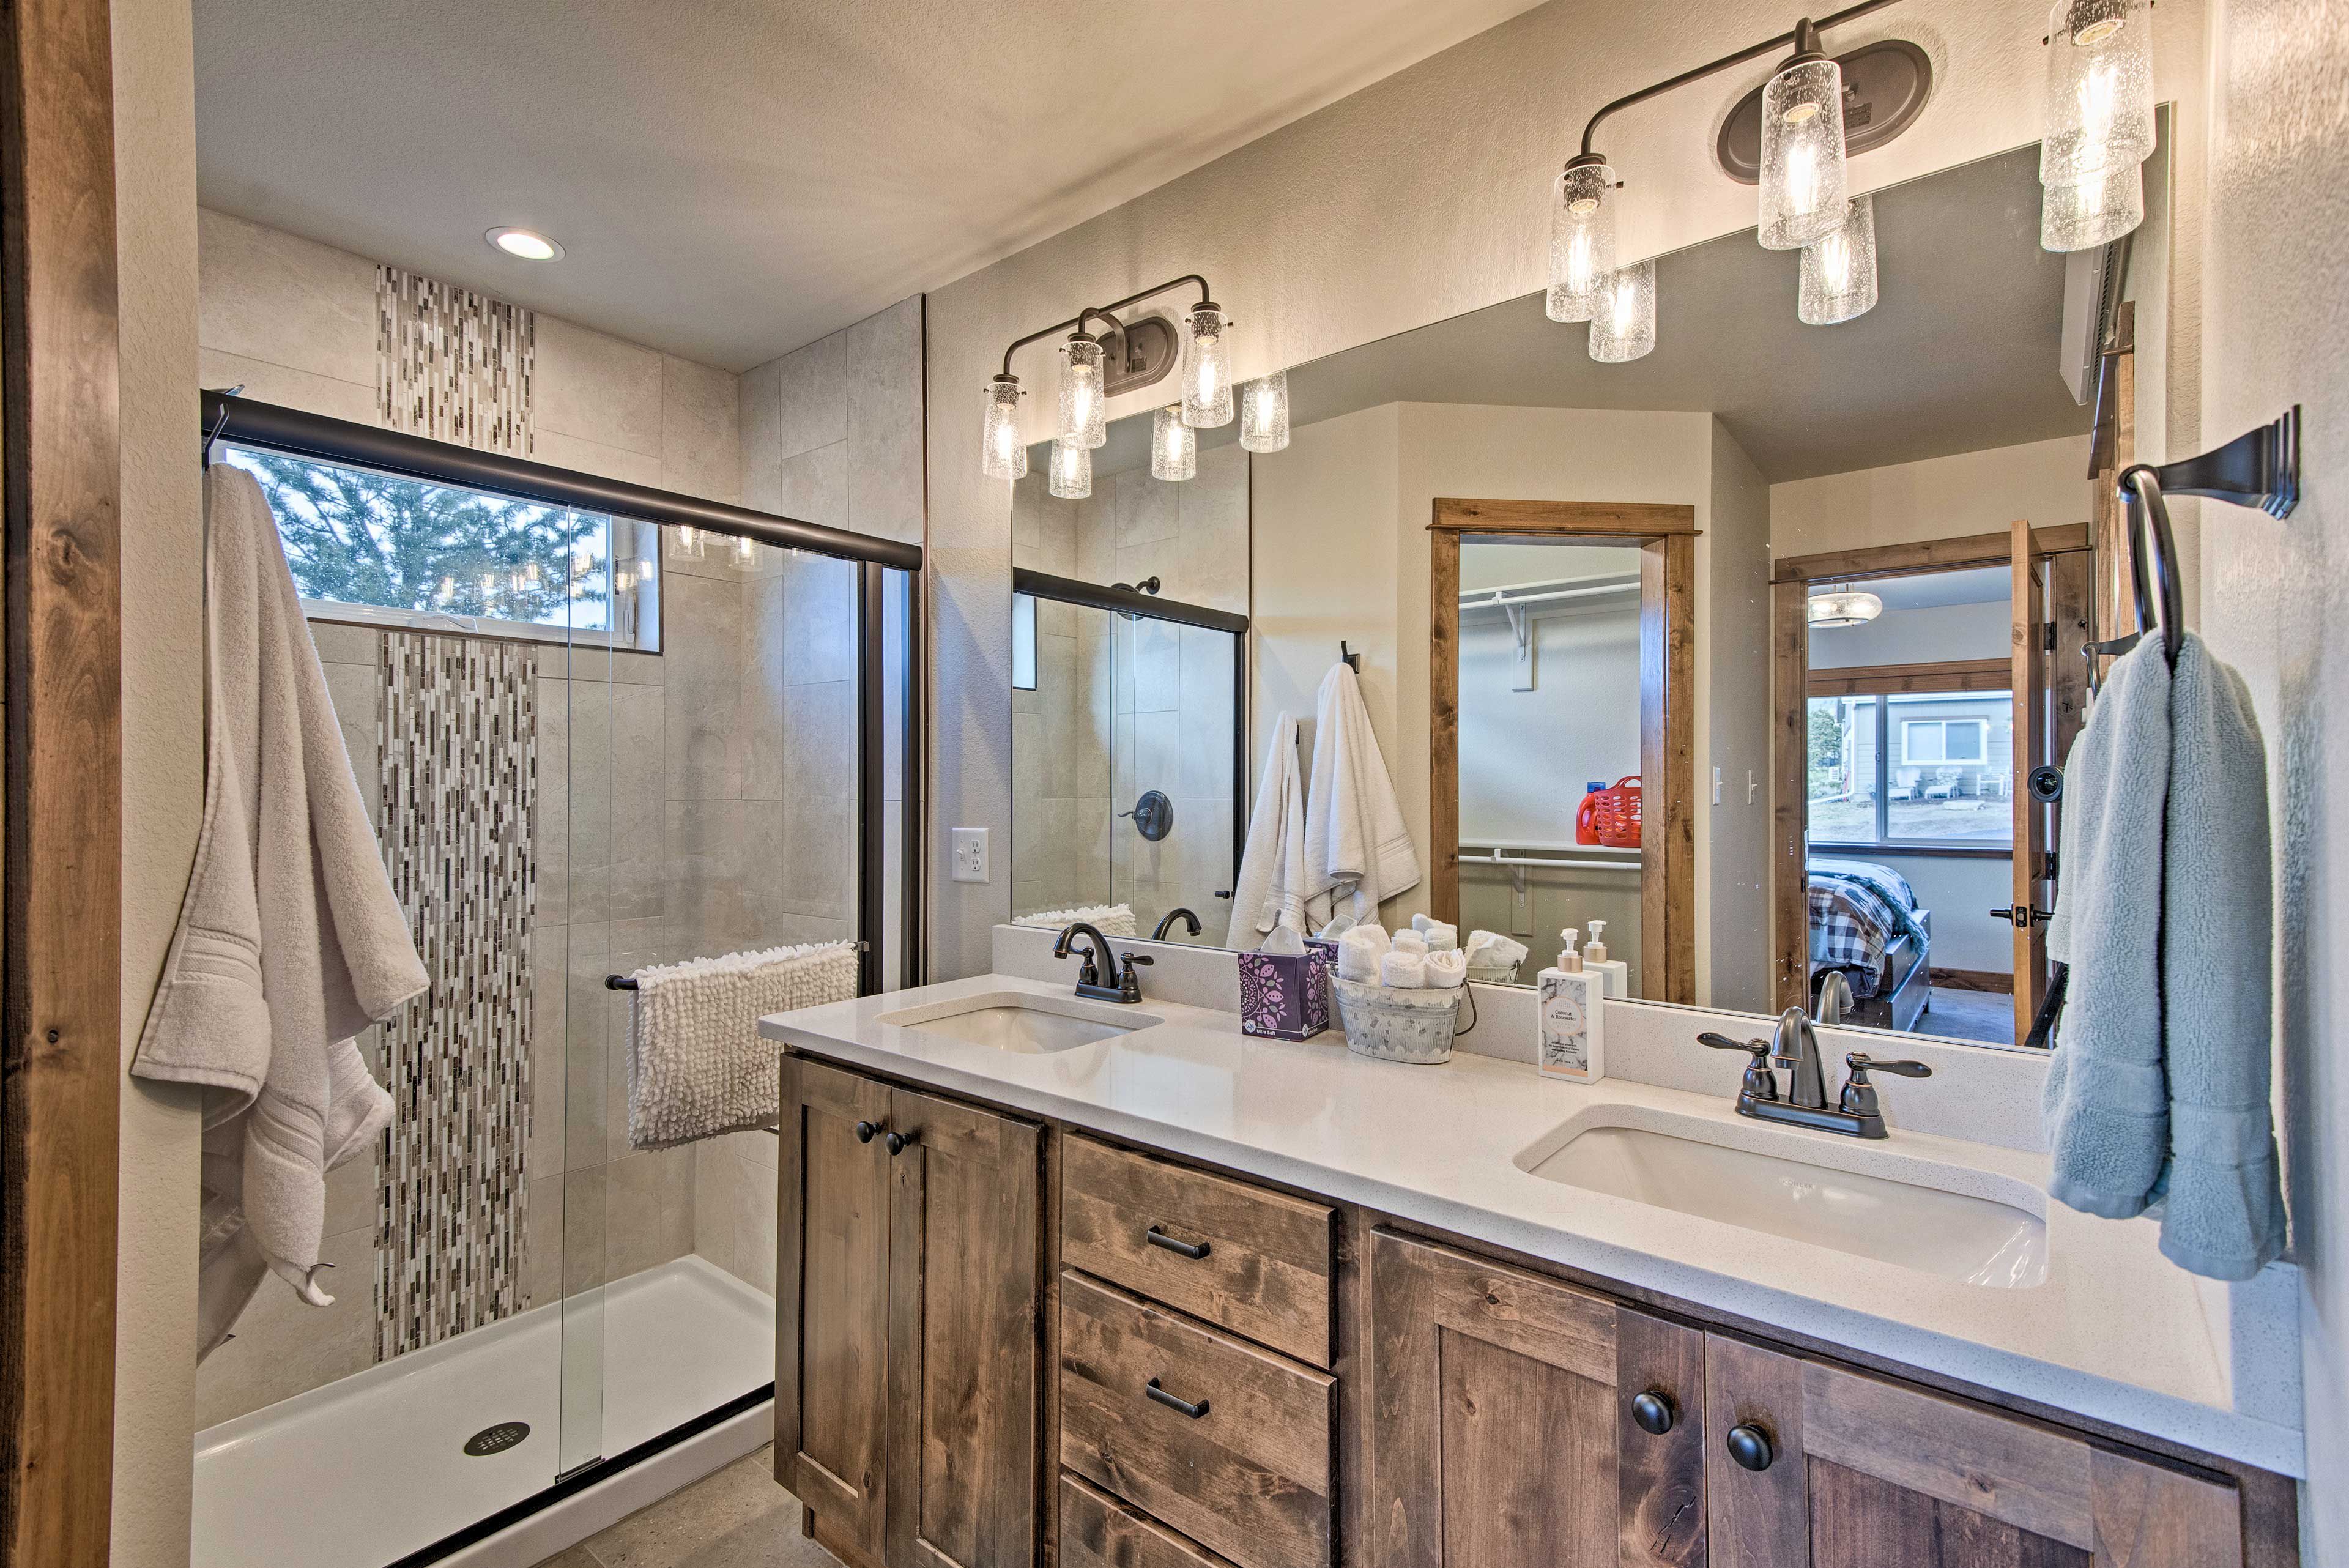 This spacious en-suite bathroom includes double sinks and a walk-in closet.